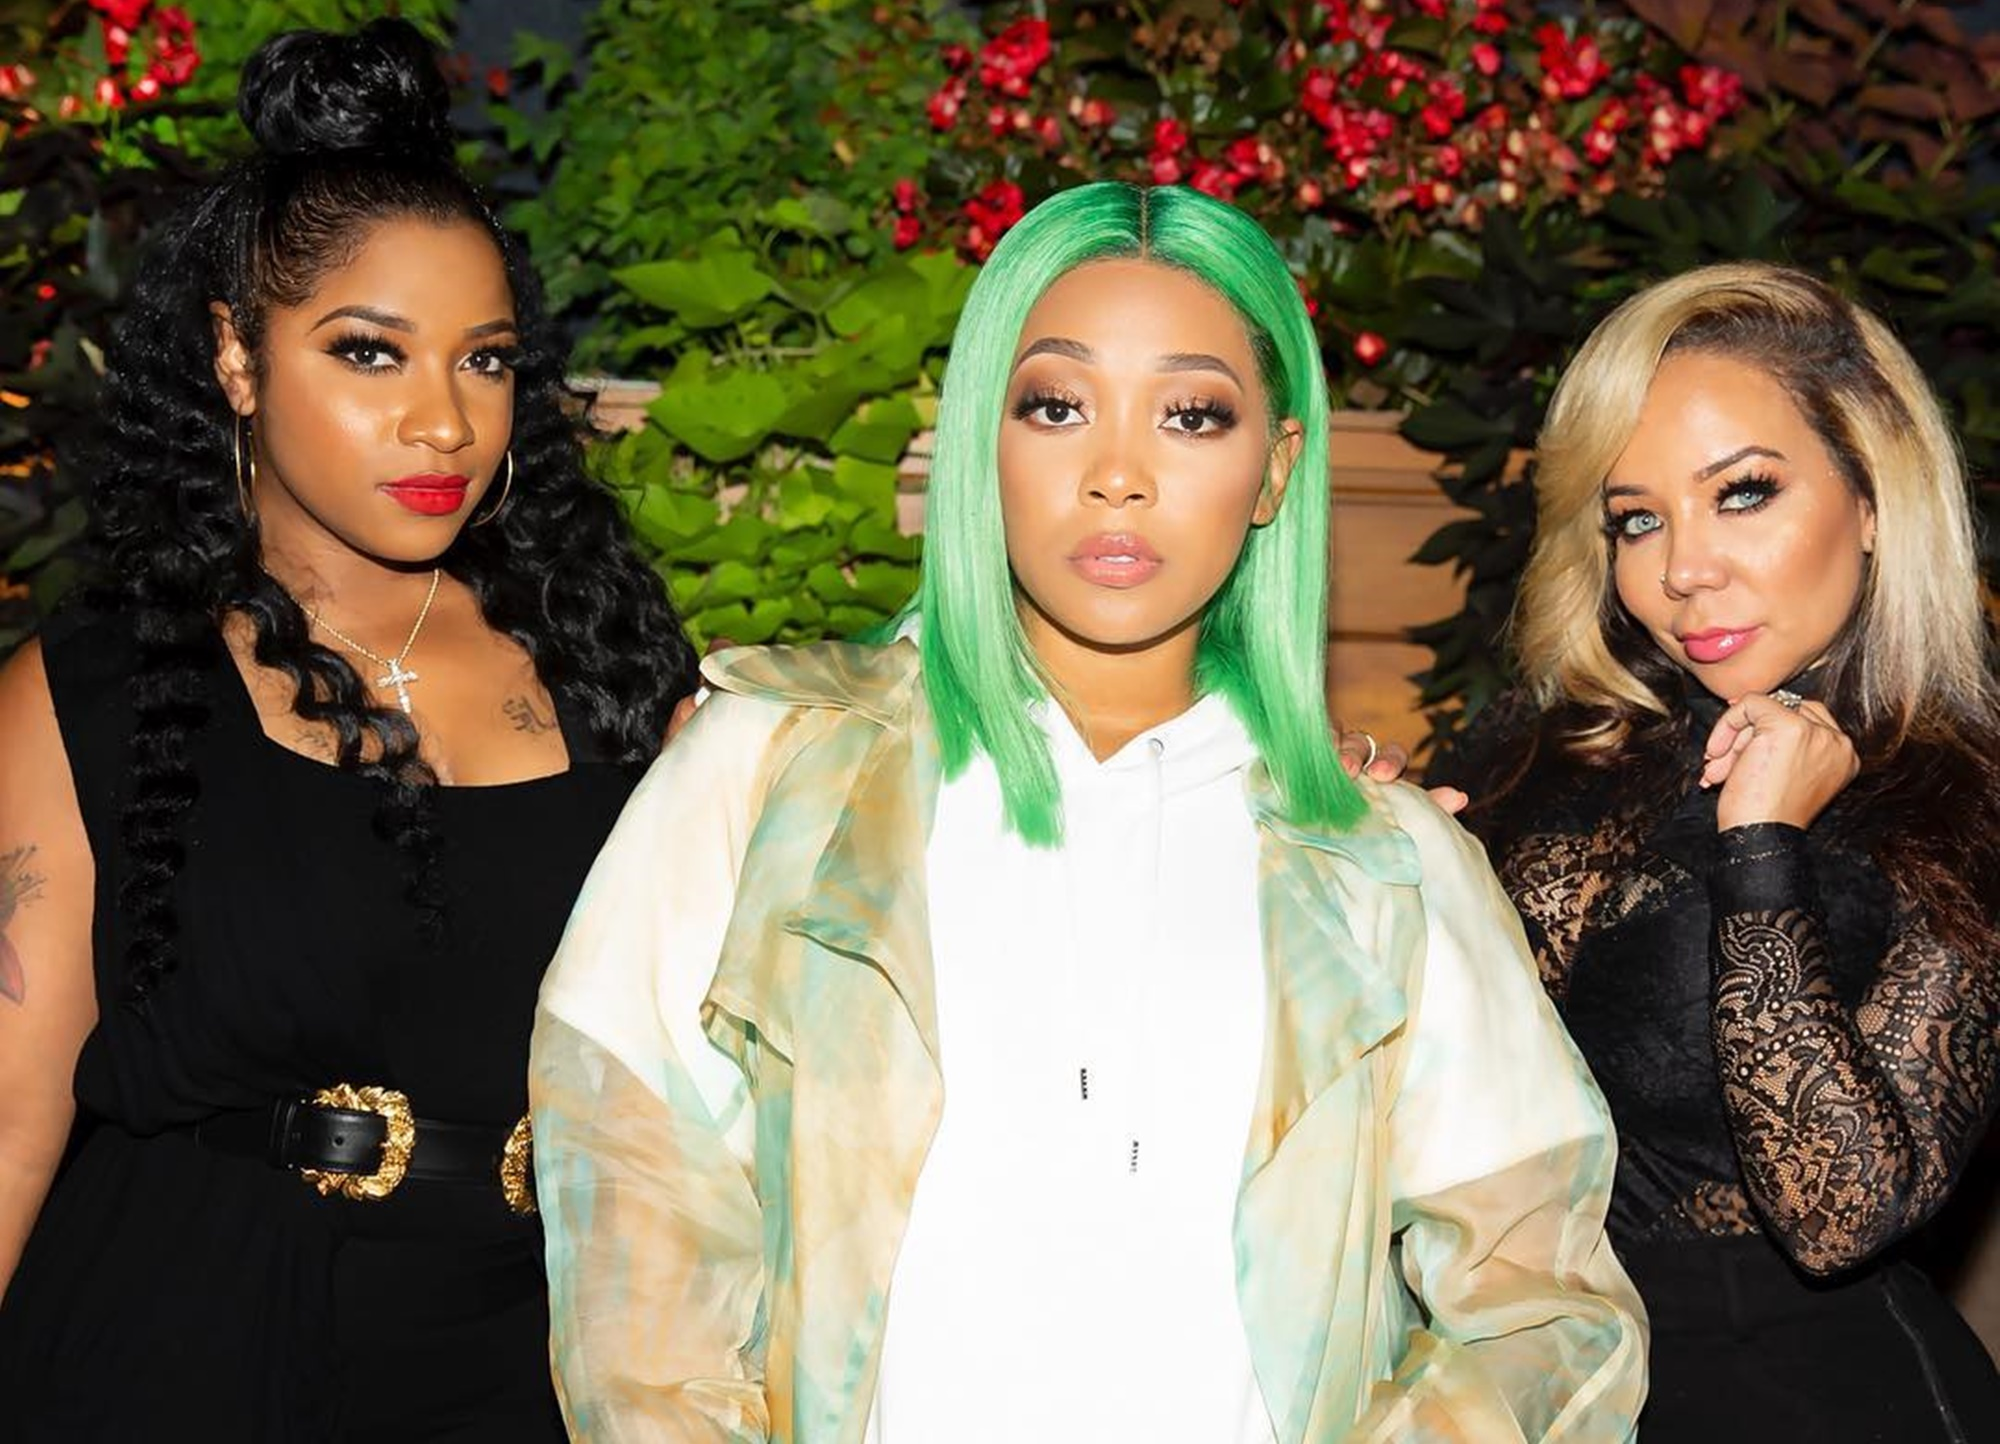 Toya Wright Poses With Tiny Harris And Monica Brown And Fans Call Them A 'Lit Trinity'